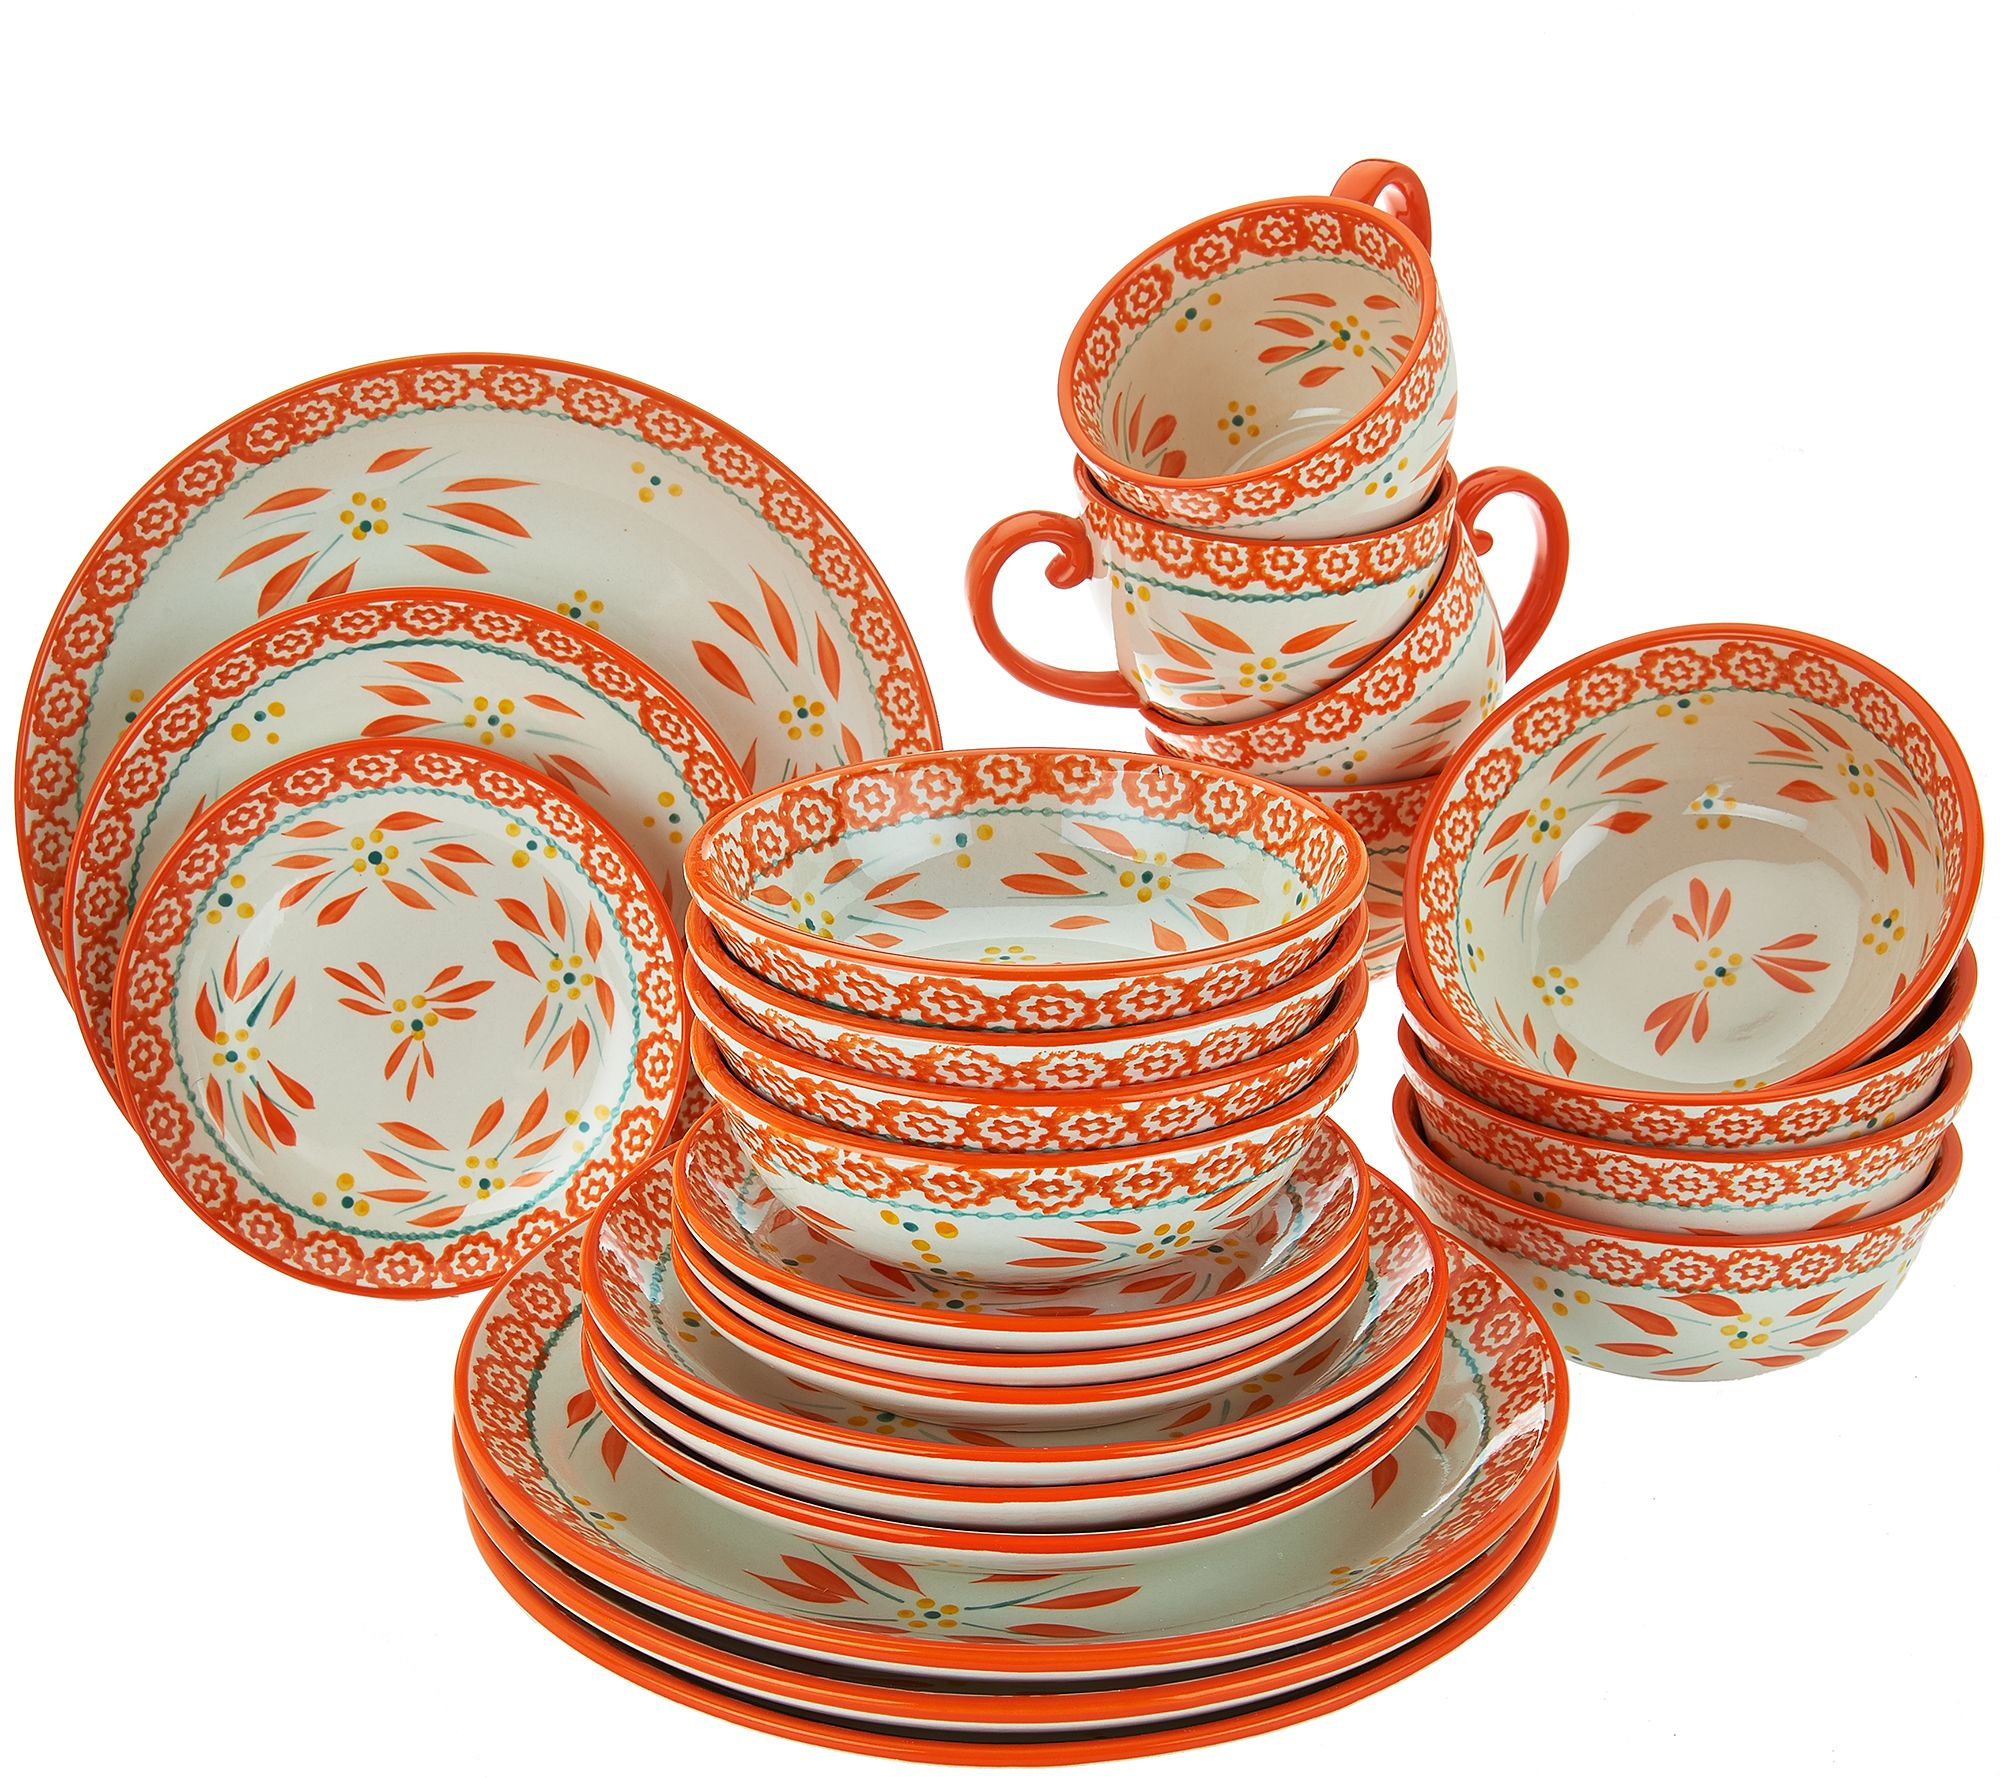 Temptations 24 Piece Old World Service For 4 Dinnerware Set   Page 1 U2014  QVC.com